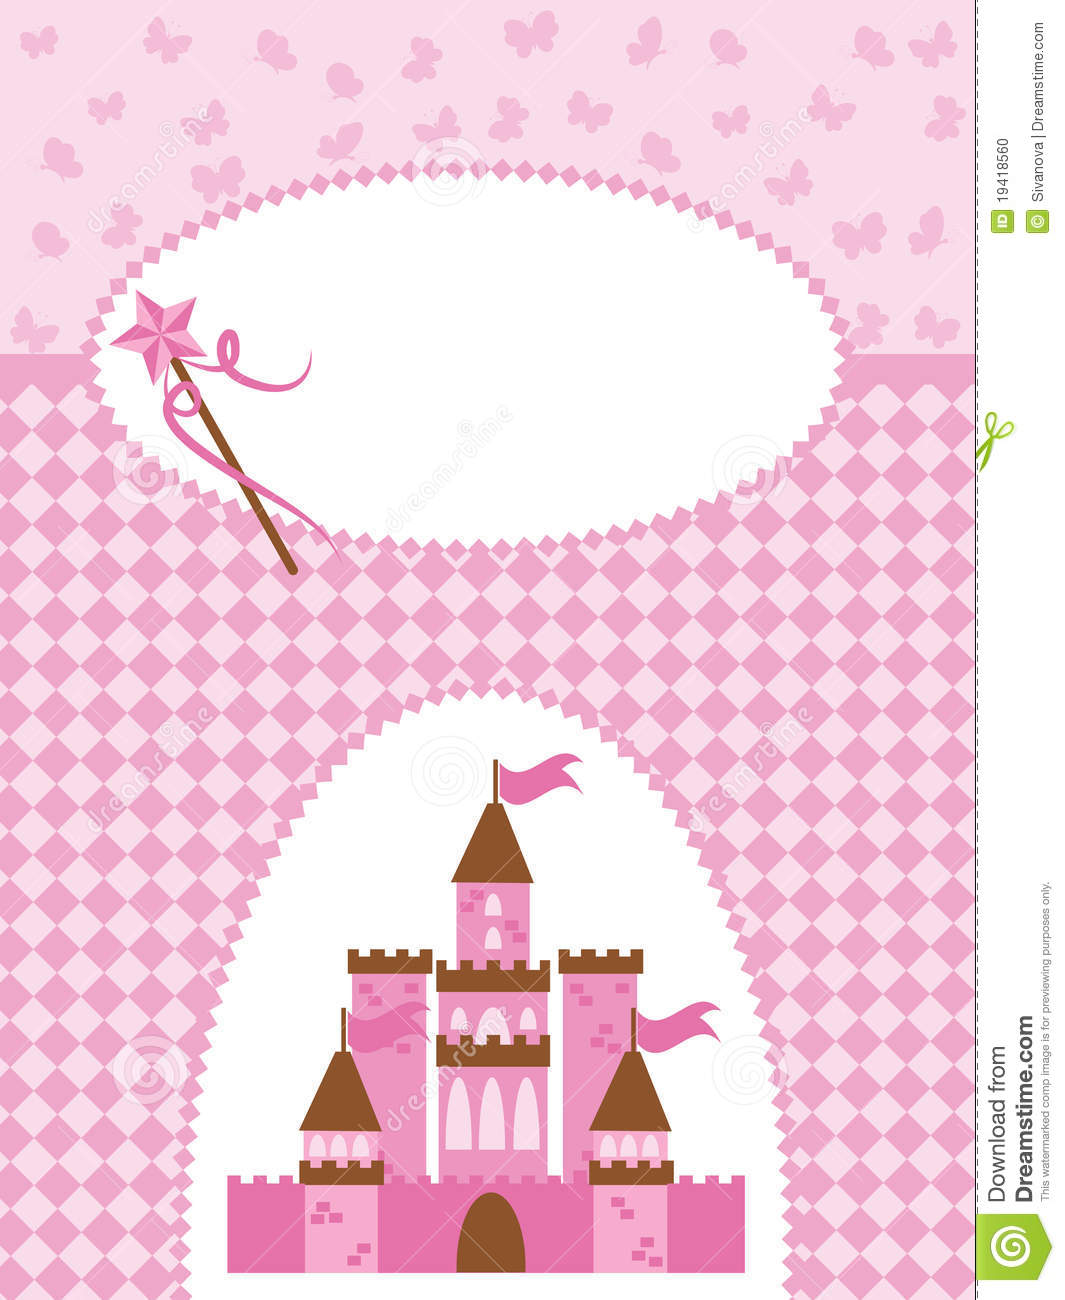 Alice In The Wonderland Invitations for awesome invitation template